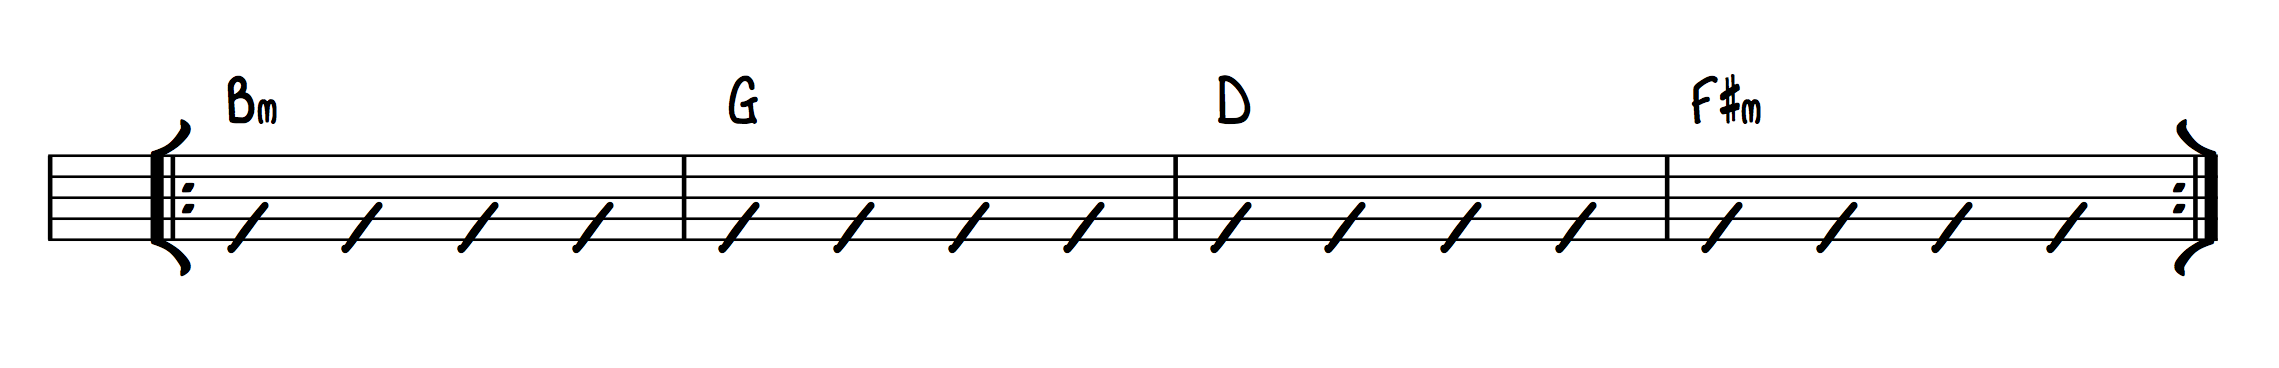 Chord Exercise 2